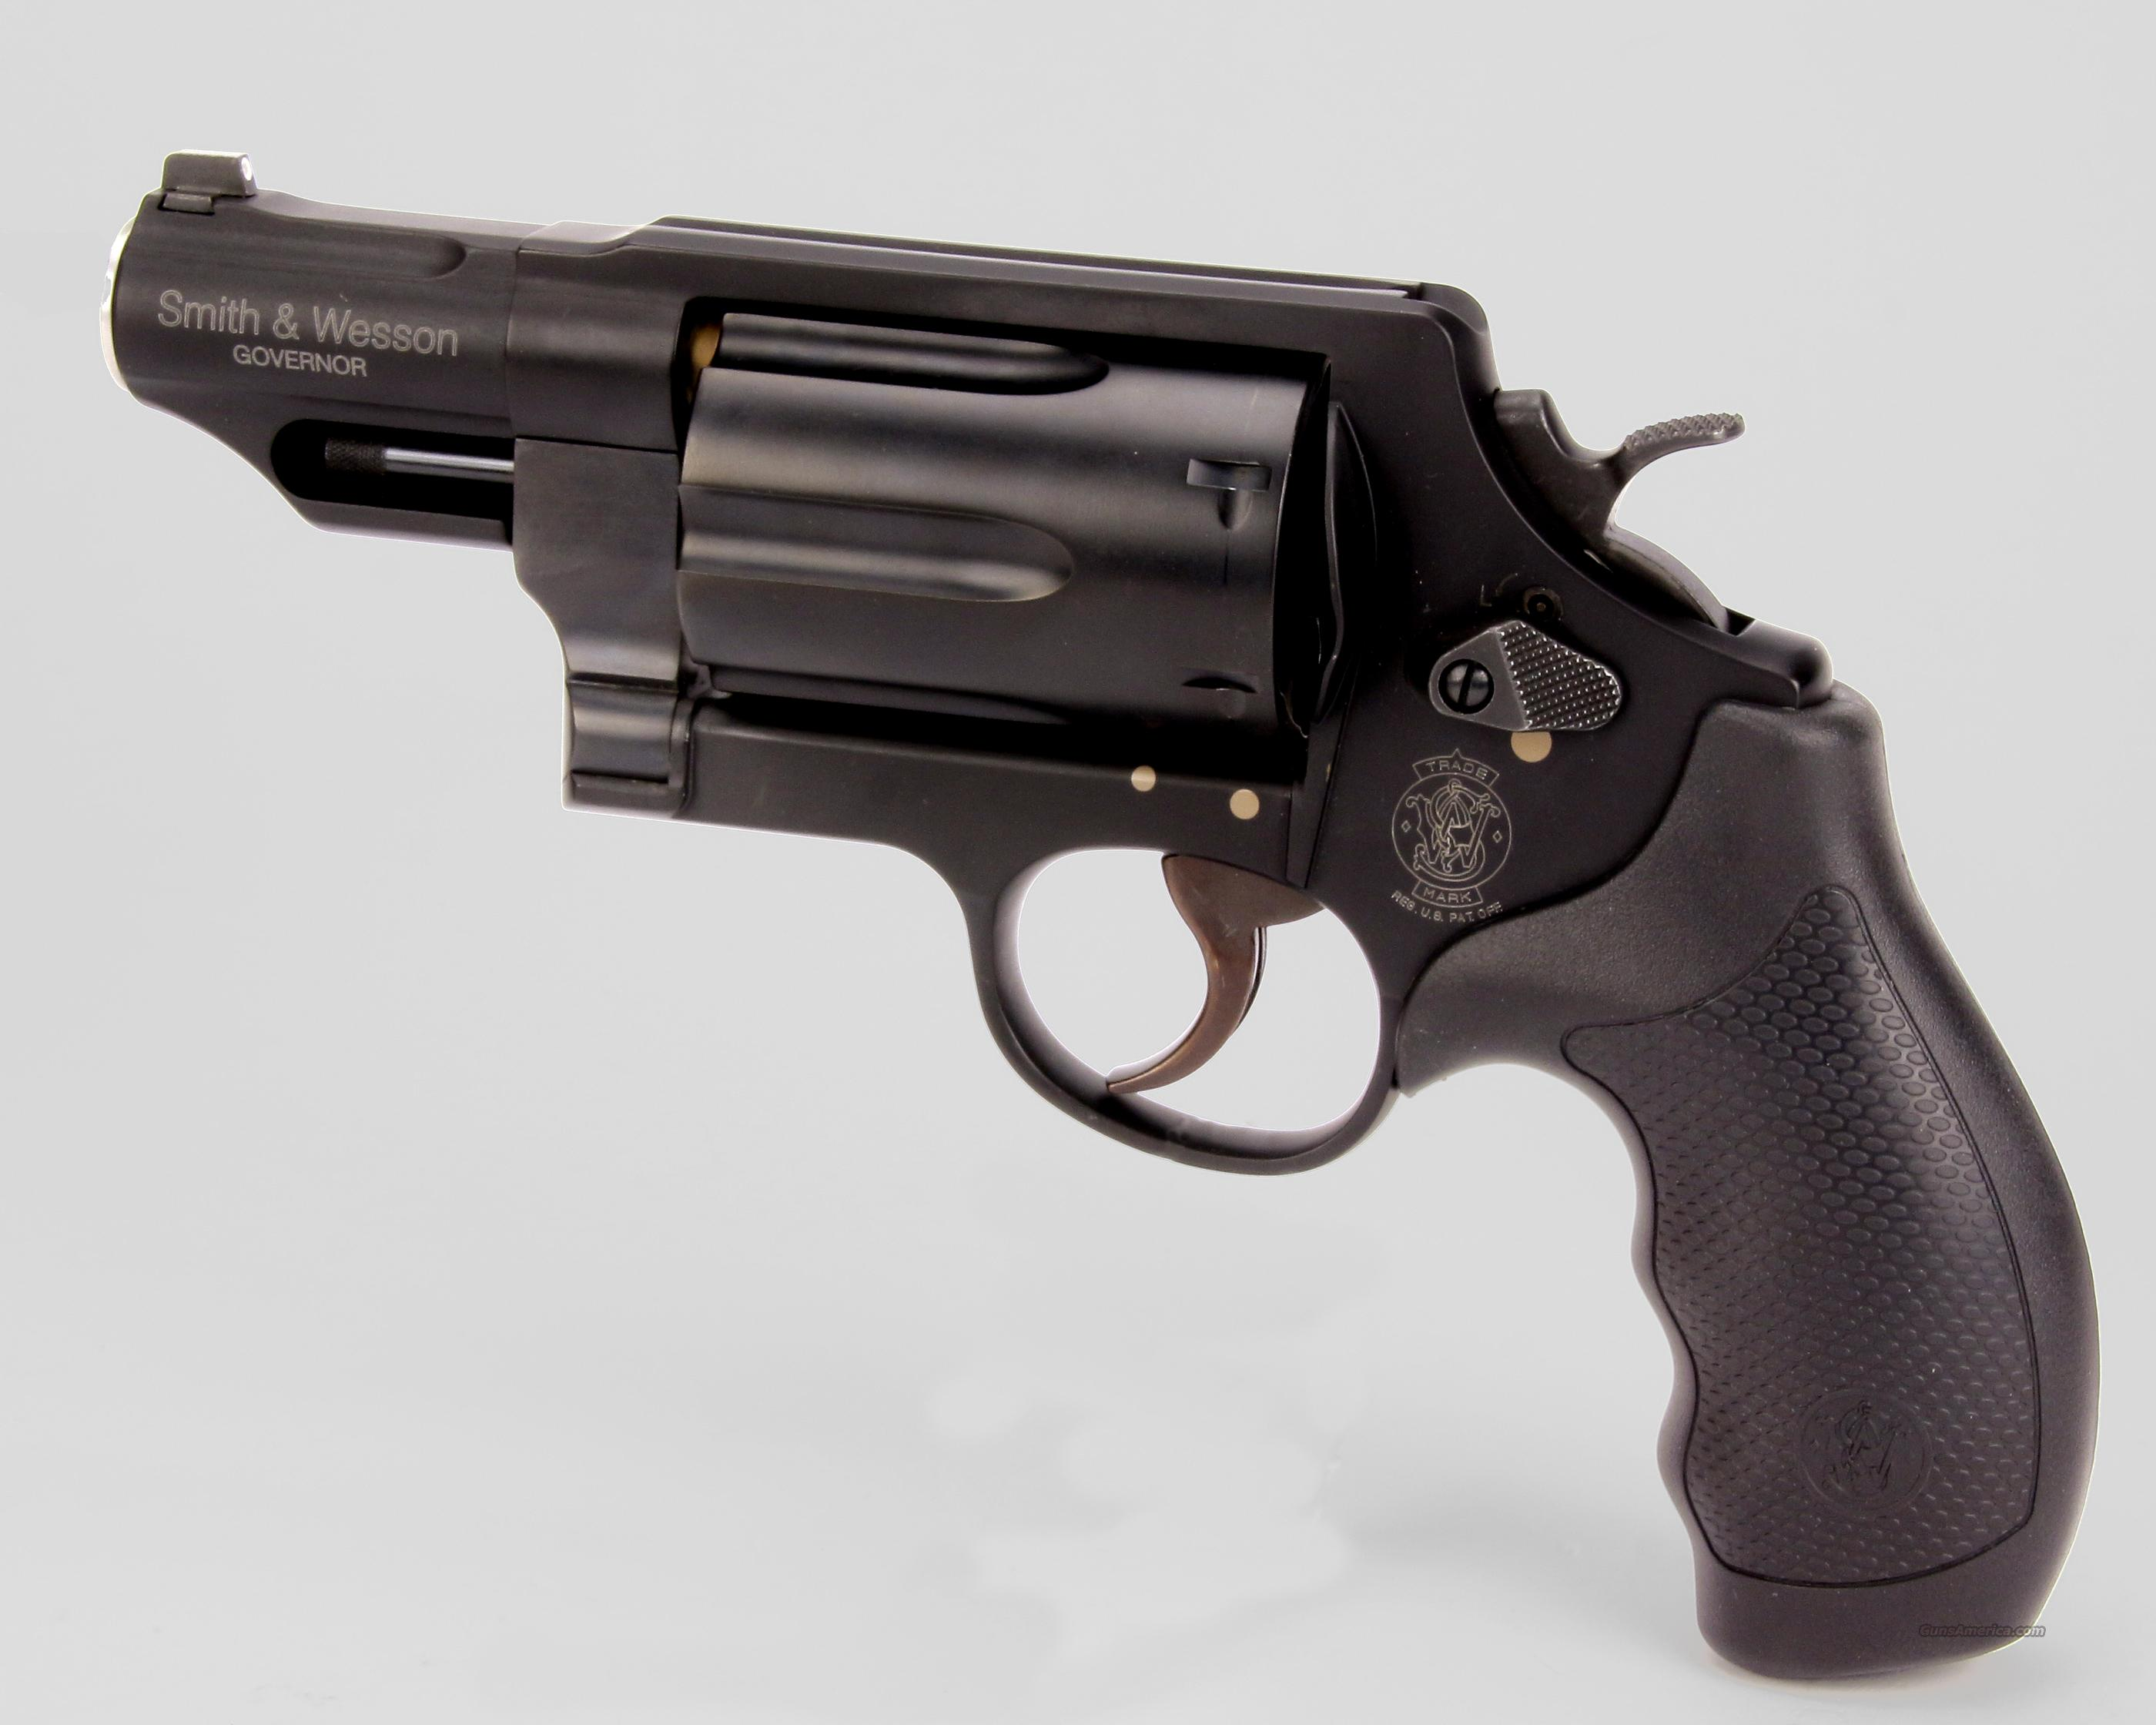 Smith & Wesson Governor Revolver  Guns > Pistols > Smith & Wesson Revolvers > Full Frame Revolver